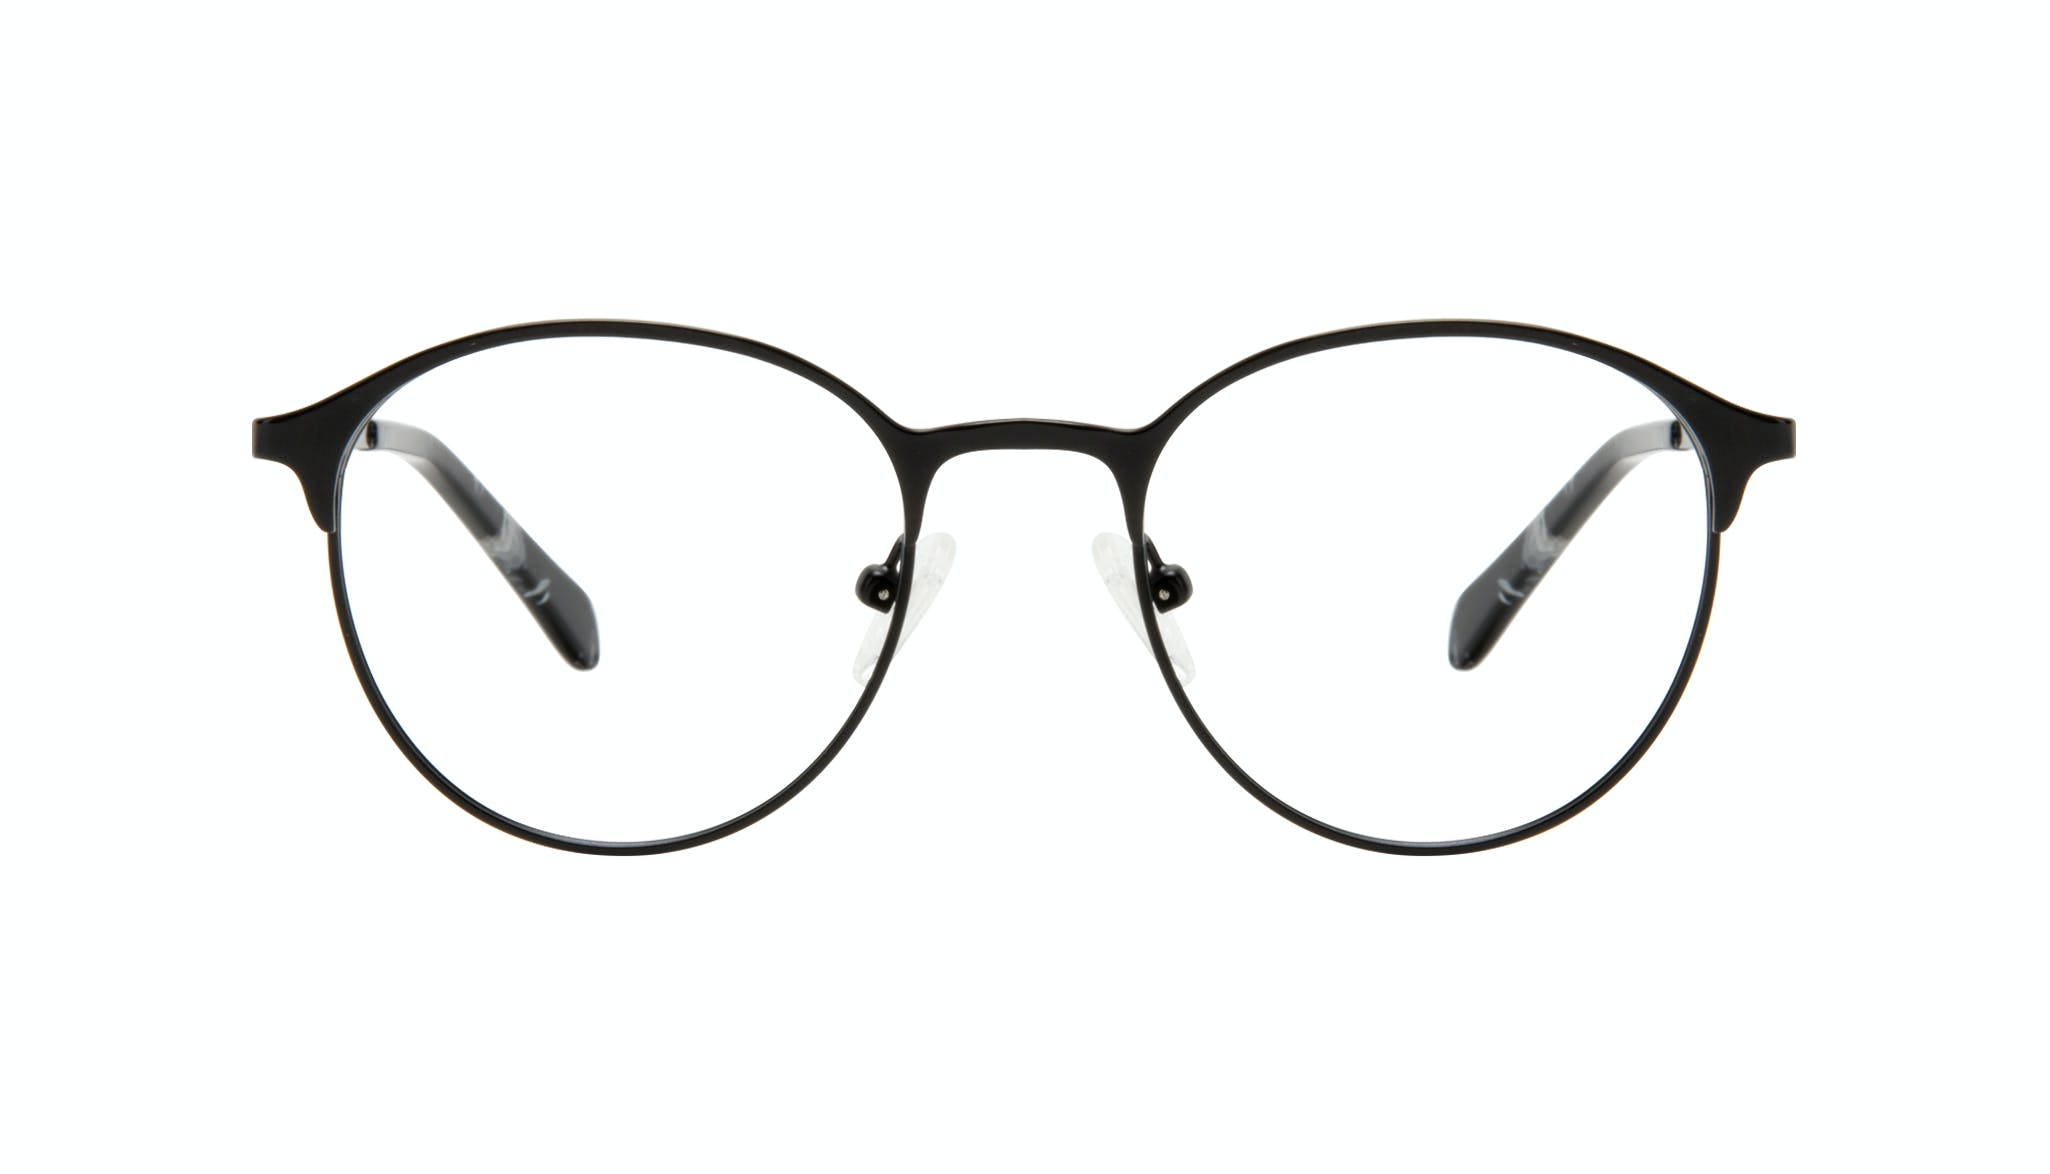 Affordable Fashion Glasses Round Eyeglasses Women Bay II Black Matte